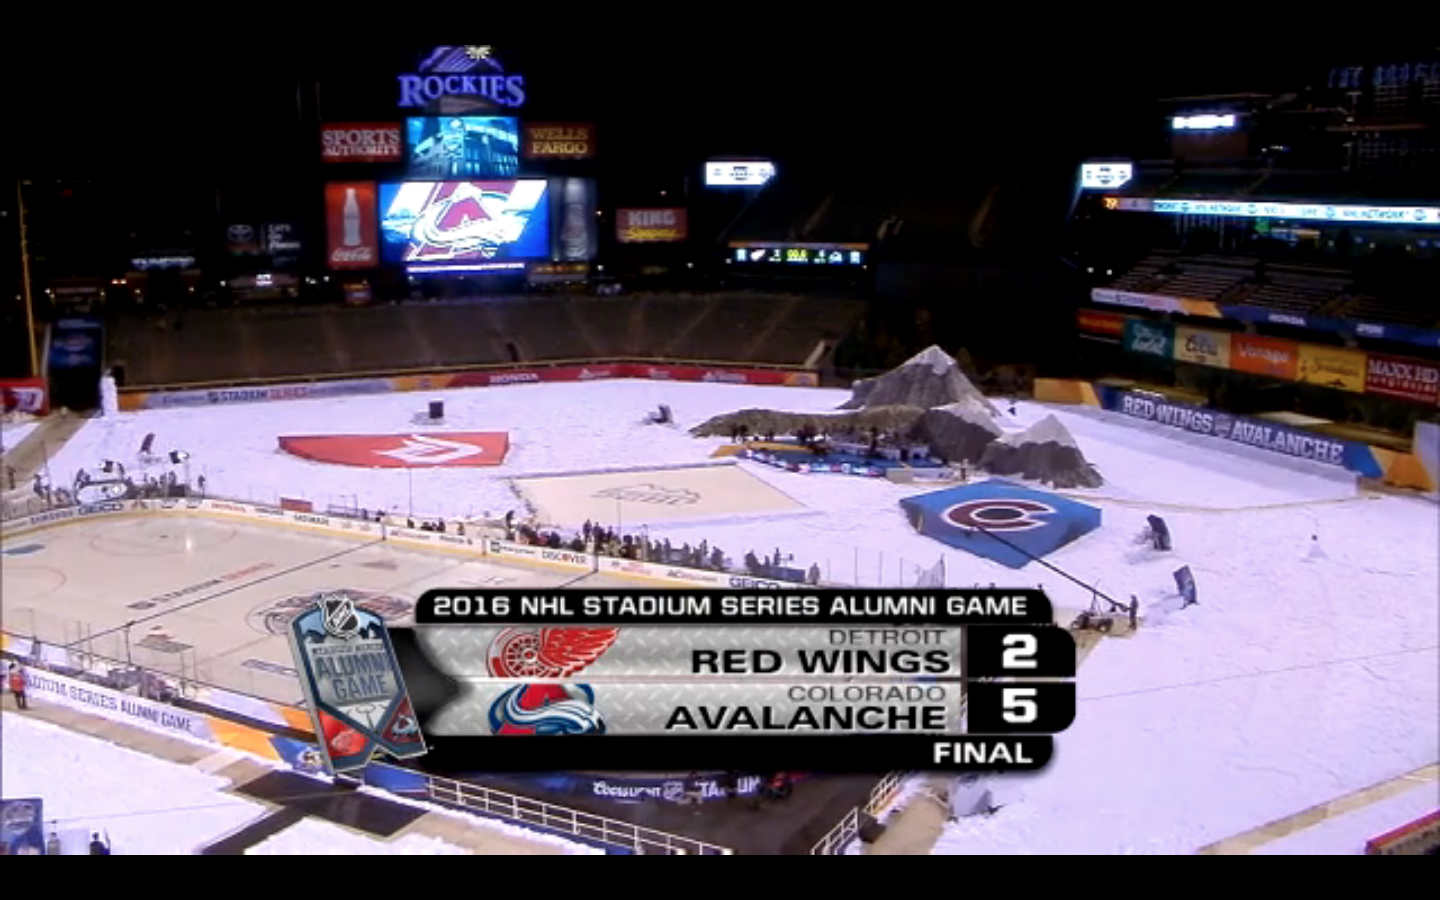 Red-Wings-vs-Avalanche-Recap-022616.jpg